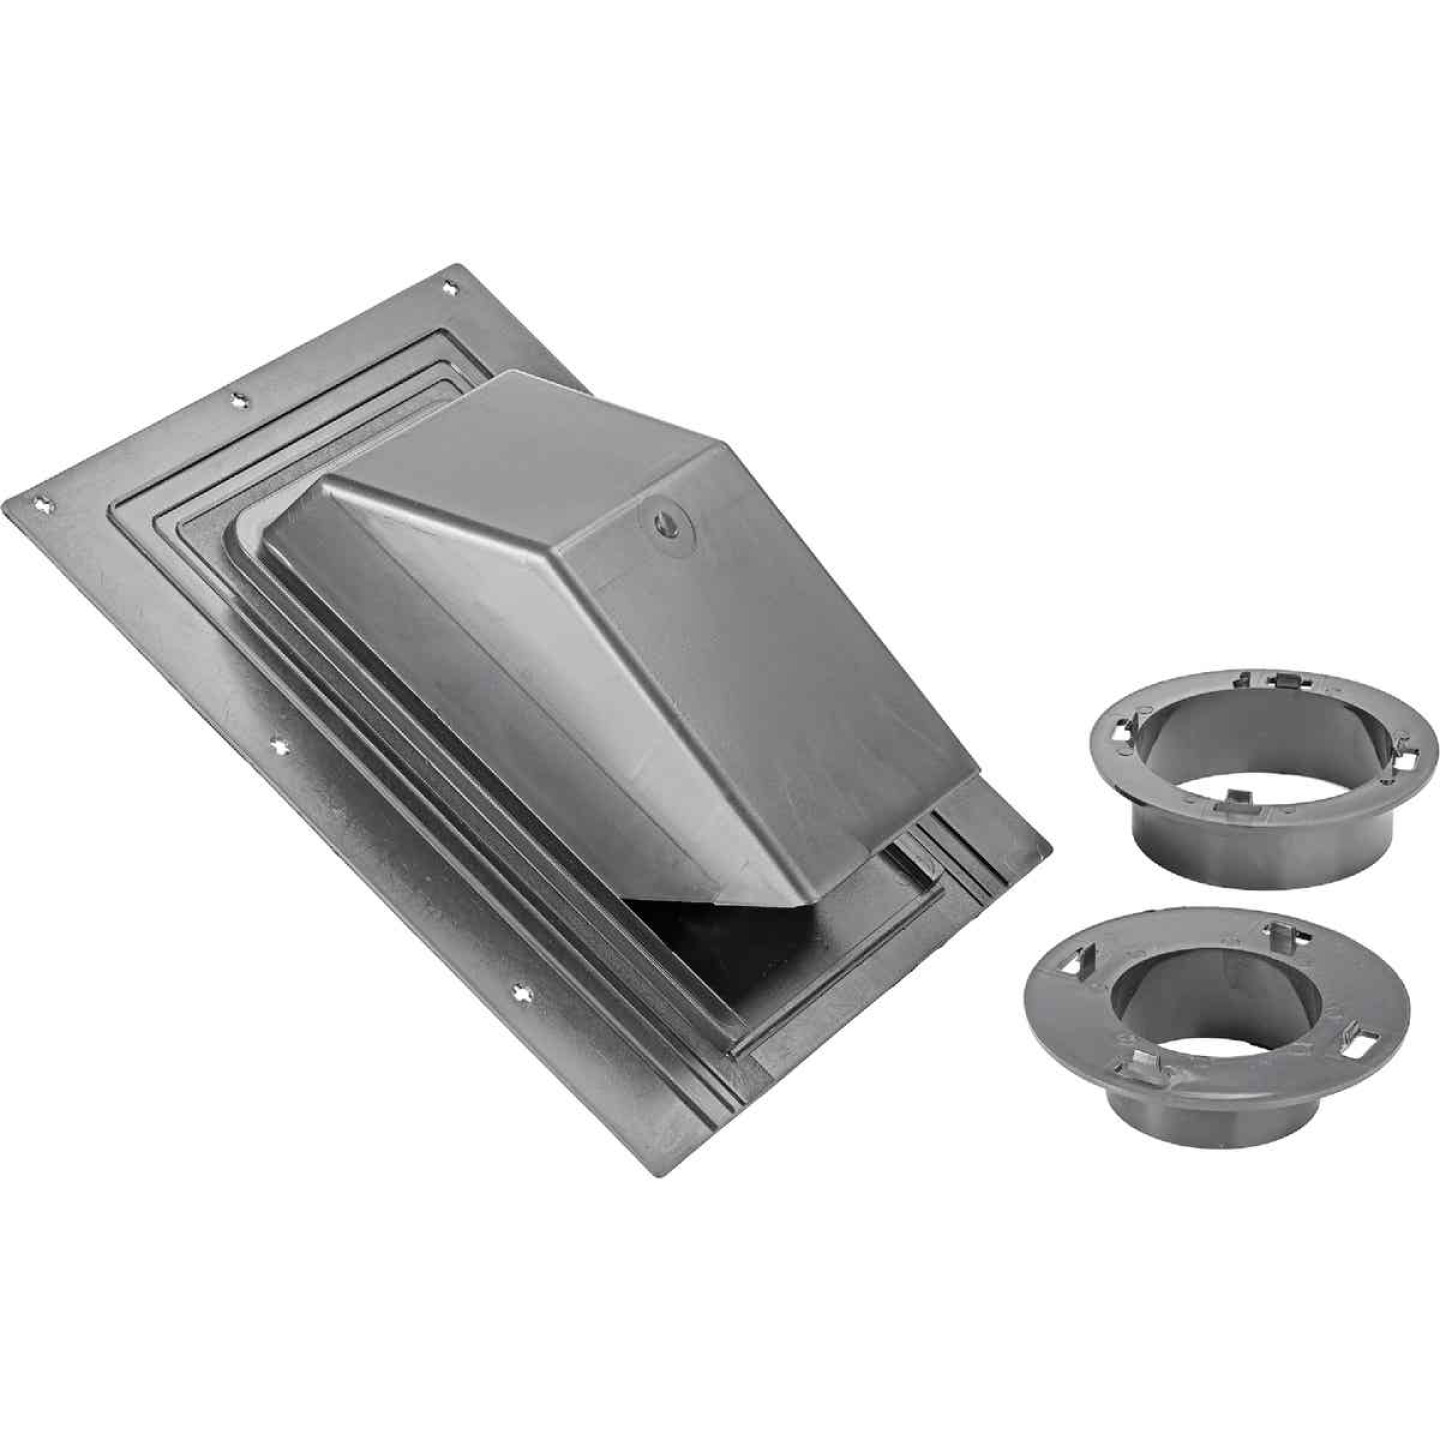 Lambro 3 In. or 4 In. Black Plastic Roof Vent Cap for Bath Exhaust Fan Image 1